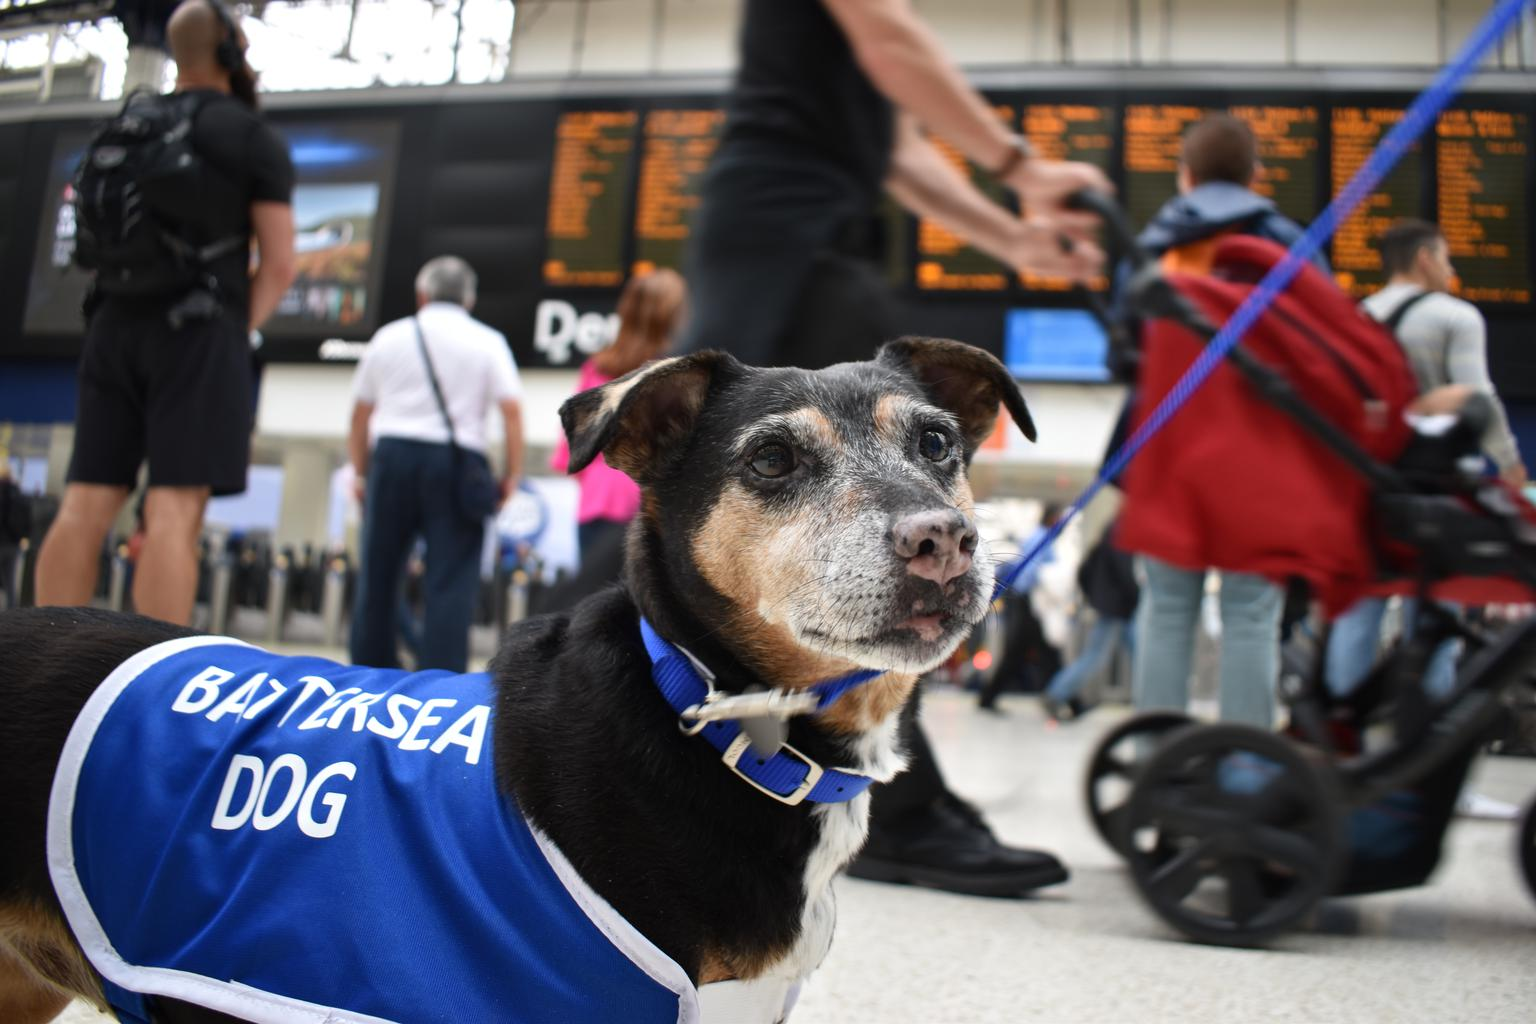 Battersea Dogs & Cats Home has today sent two adorable Jack Russell Terriers on a mission: to help make commuters at London Waterloo smile during the August engineering works. Tags: Battersea Dogs & Cats Home Jack  Russell Terrier London terriers Waterloo